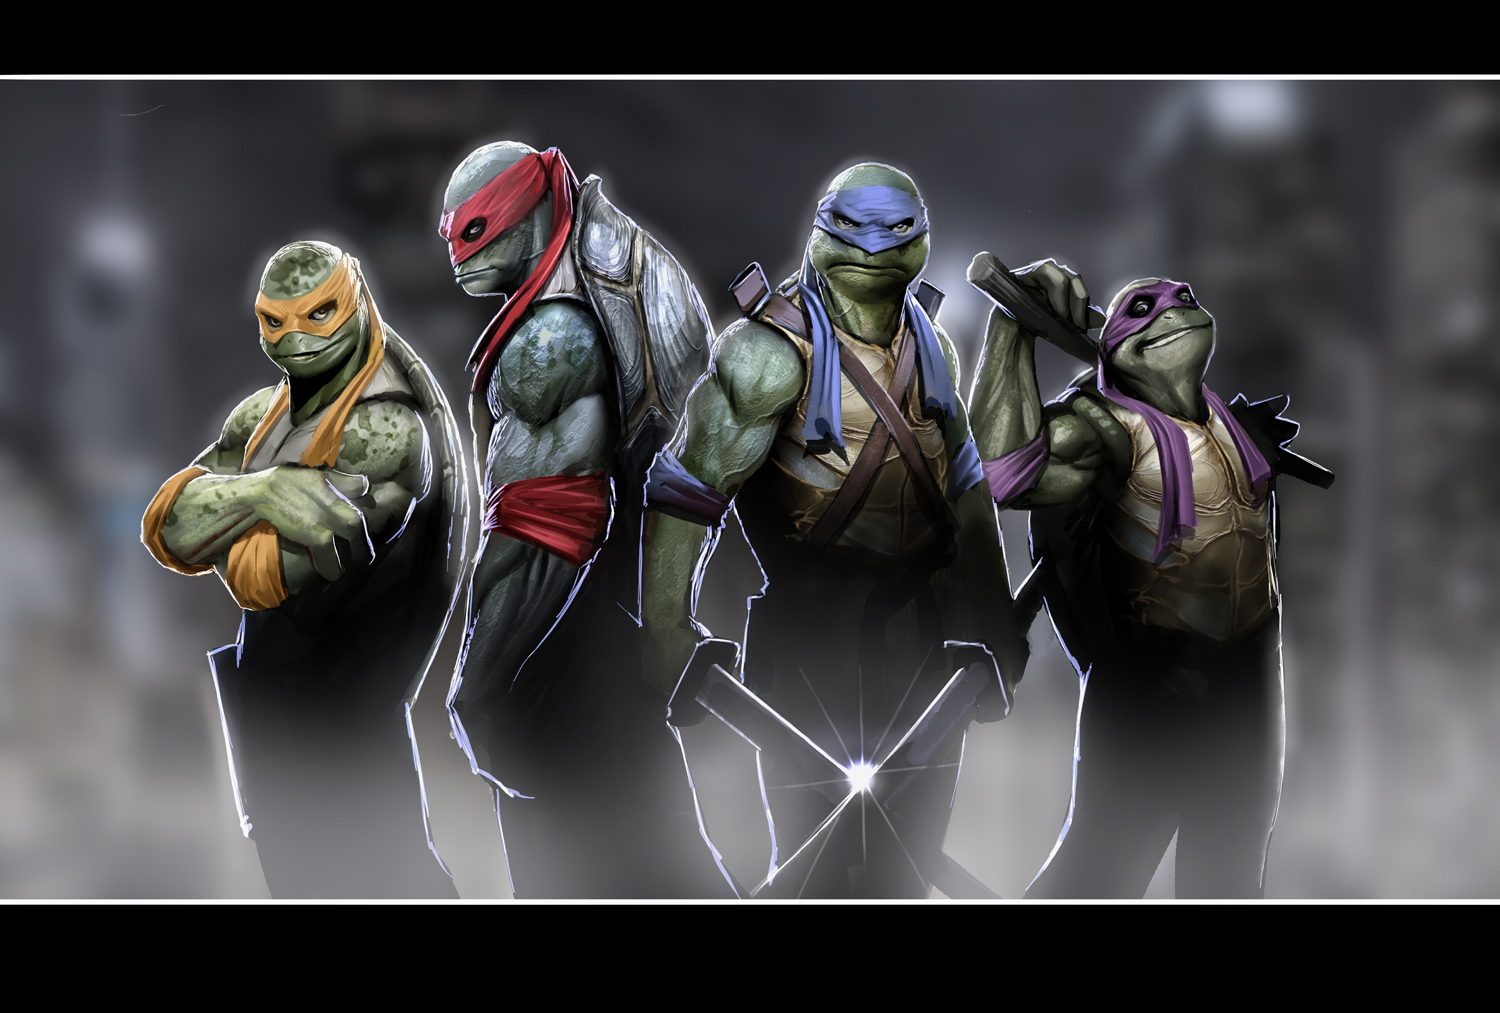 Film Super 7 MOVIE HYPE SA TEENAGE MUTANT NINJA TURTLES Reboot x